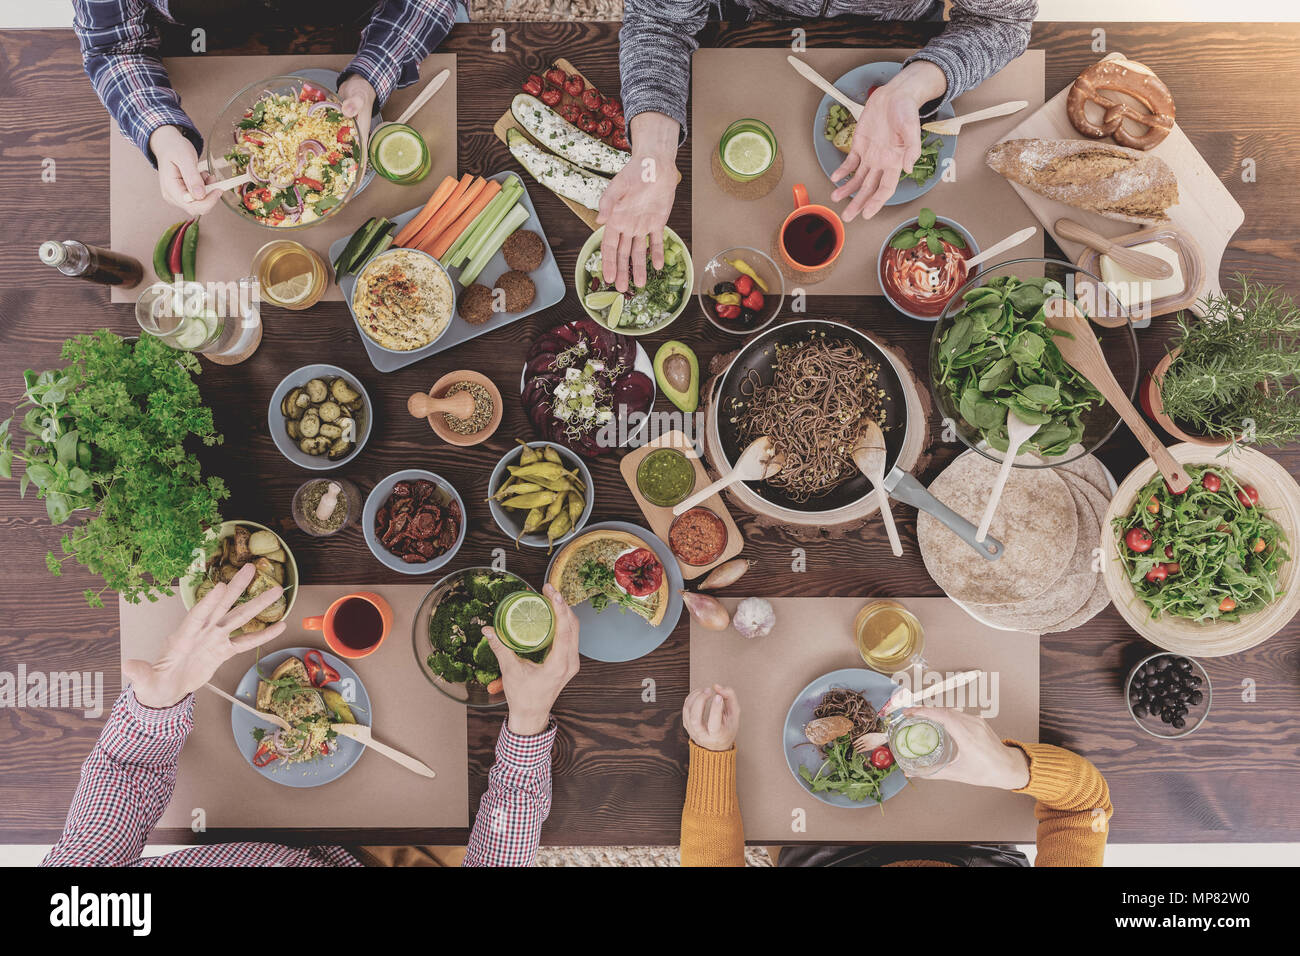 Various vegetarian dishes lying on wooden table, top view - Stock Image